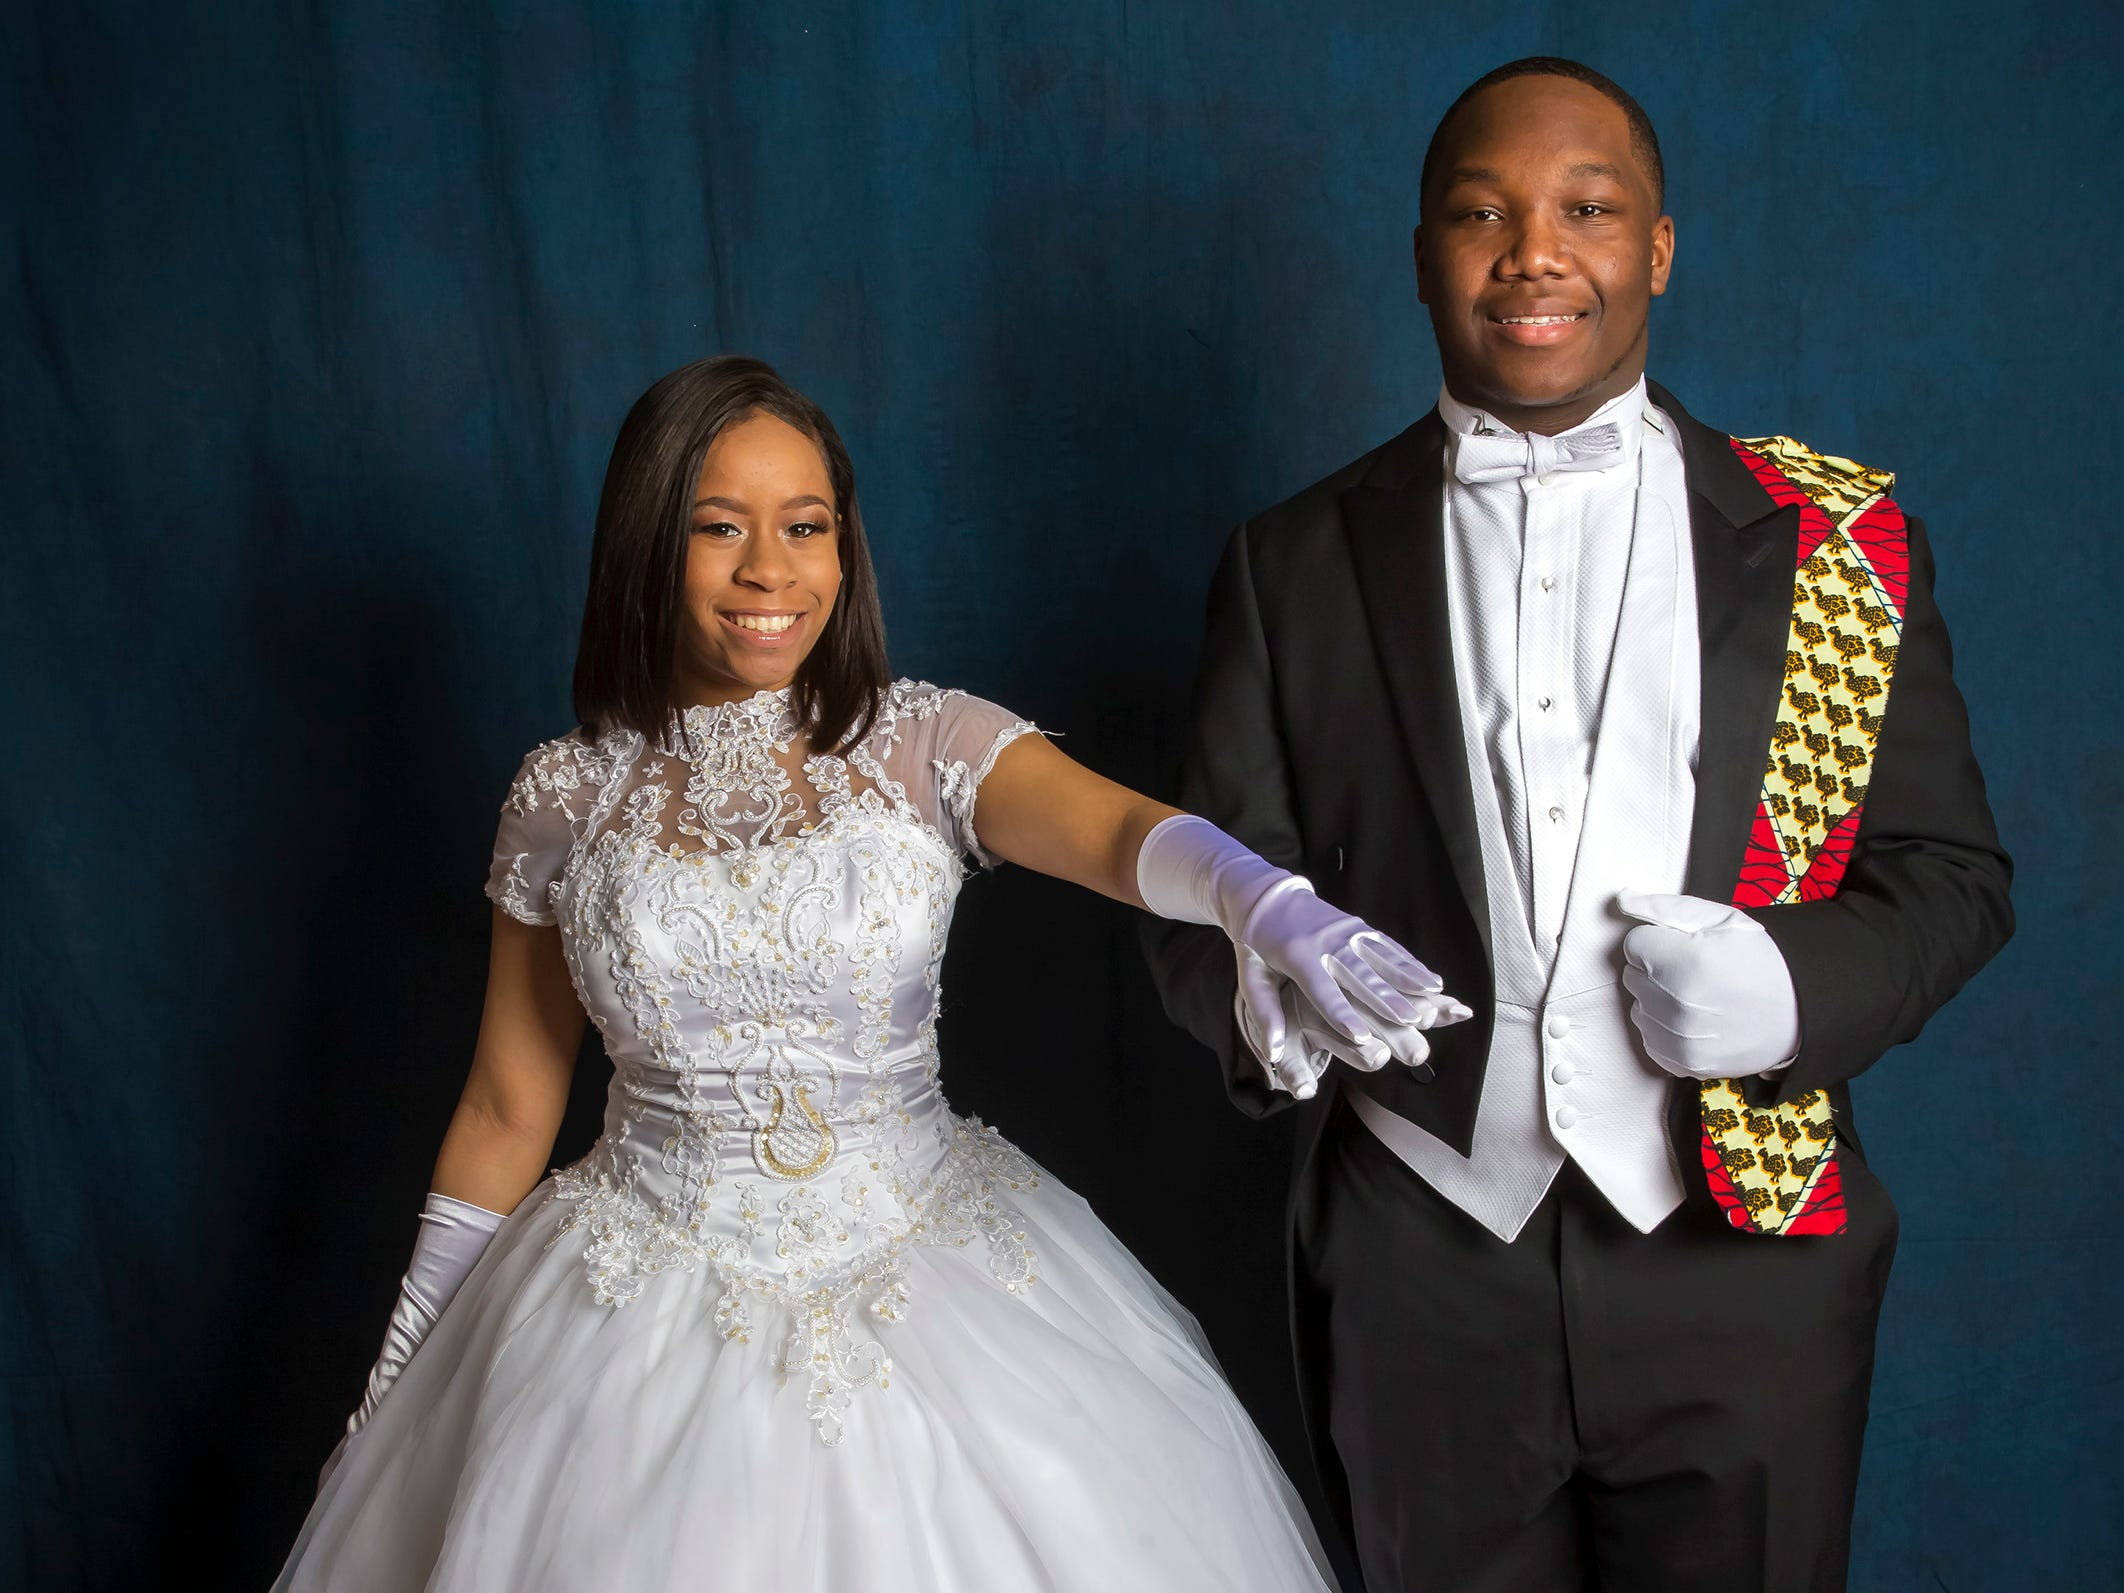 Courtney Marks and Isaac Buford at the Murfreesboro Alumni Chapter of Kappa Alpha Psi Fraternity Beautillion held at Embassy Suites.